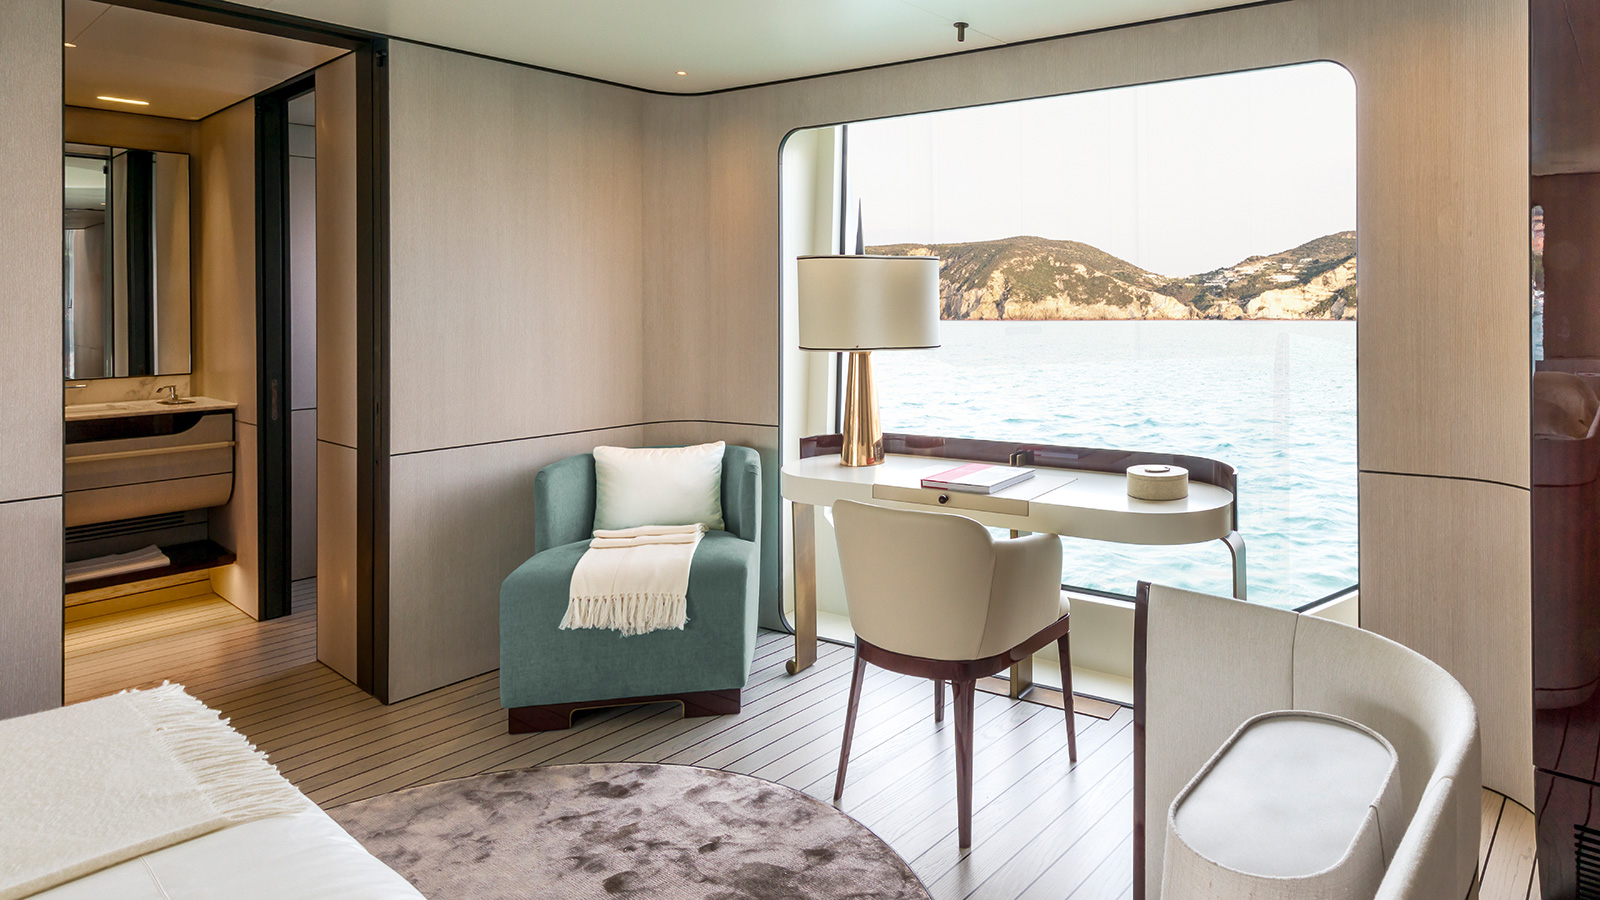 the-owners-cabin-on-the-azimut-grande-35-metri-yacht